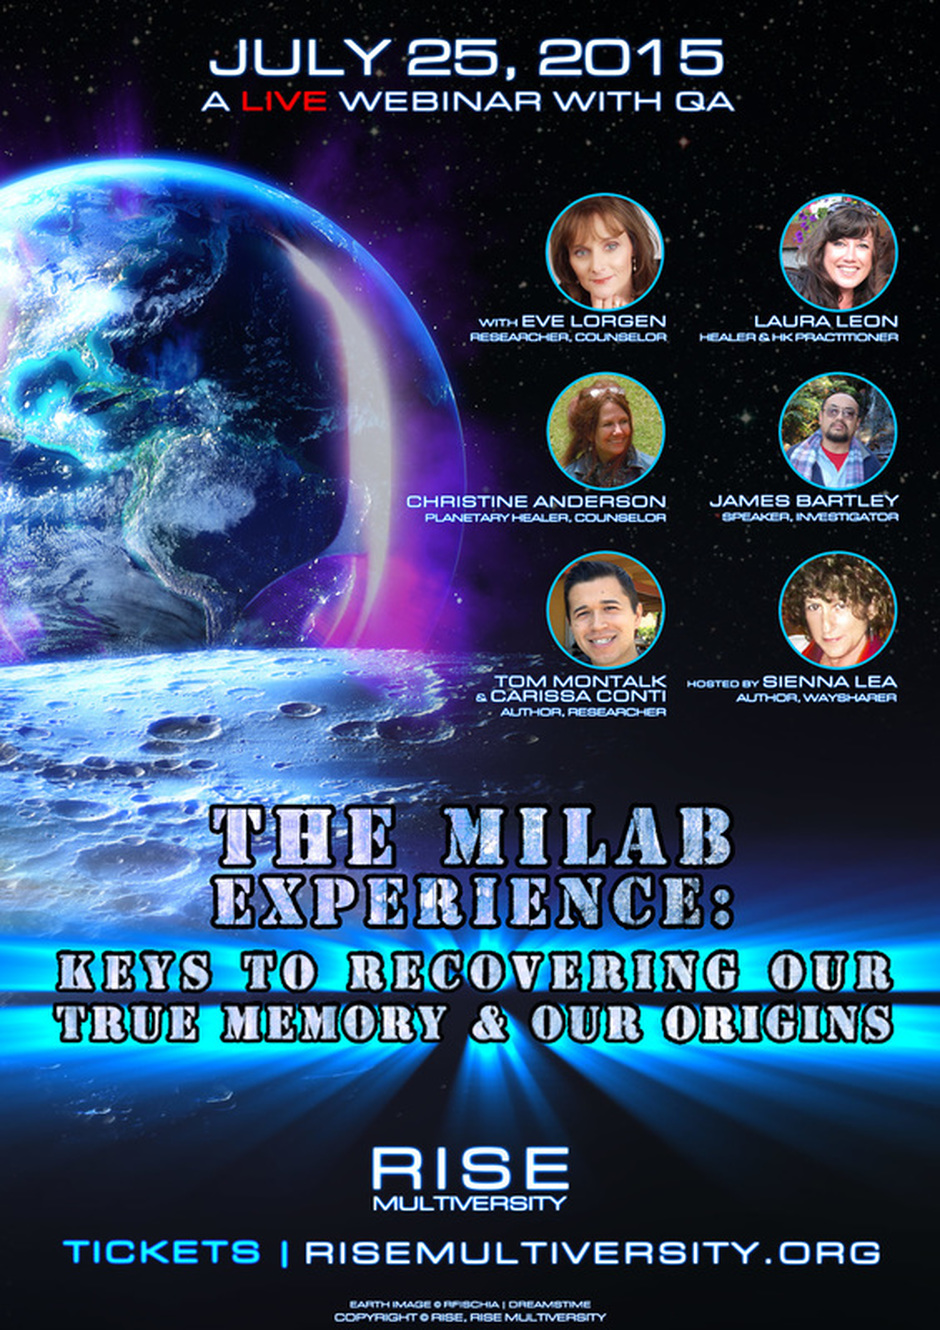 The Milab Experience